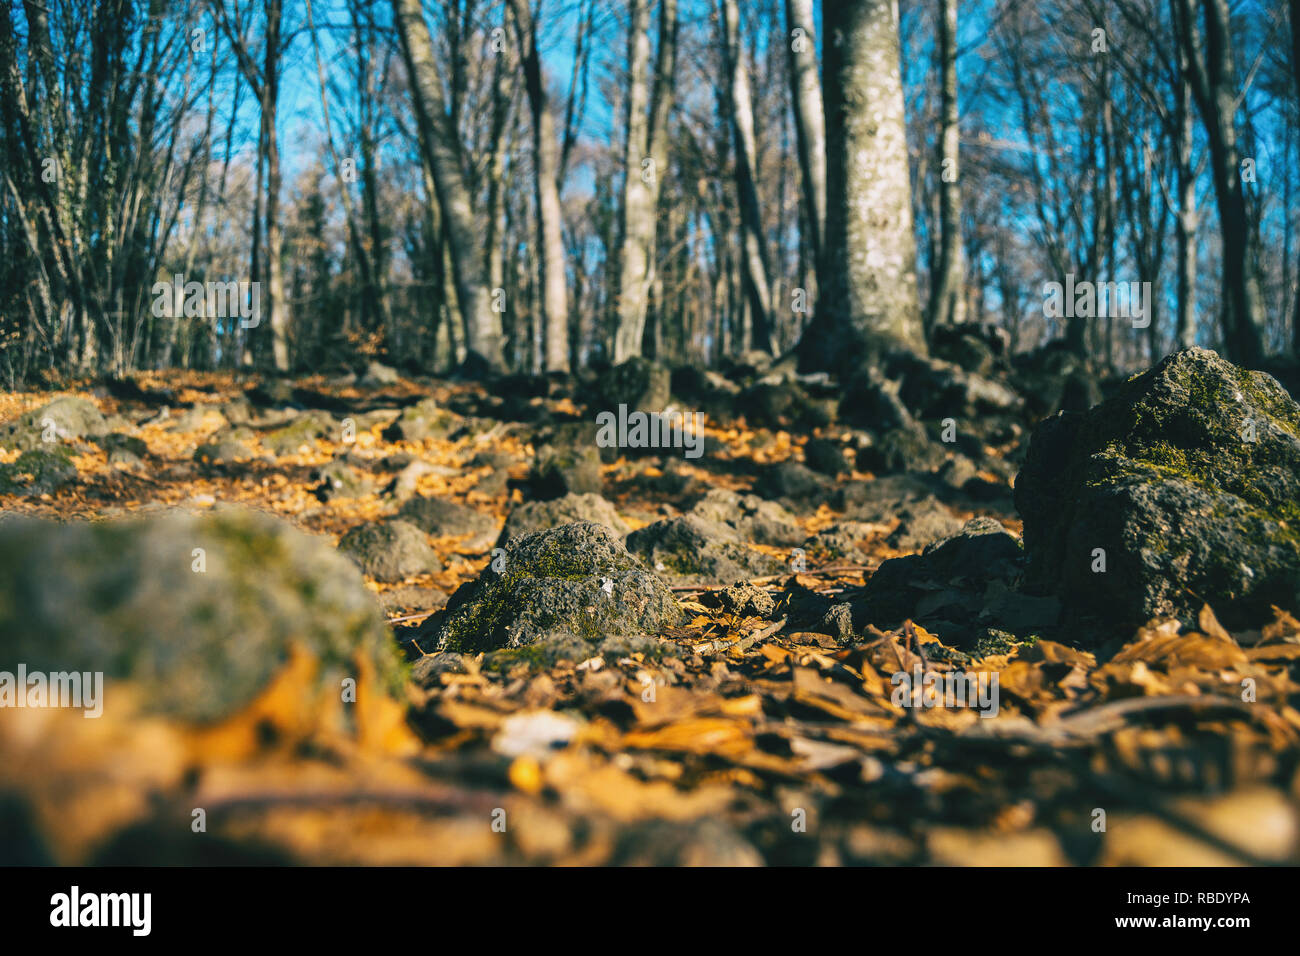 Autumnal forest taken at ground level with two mossy rocks focused - Stock Image